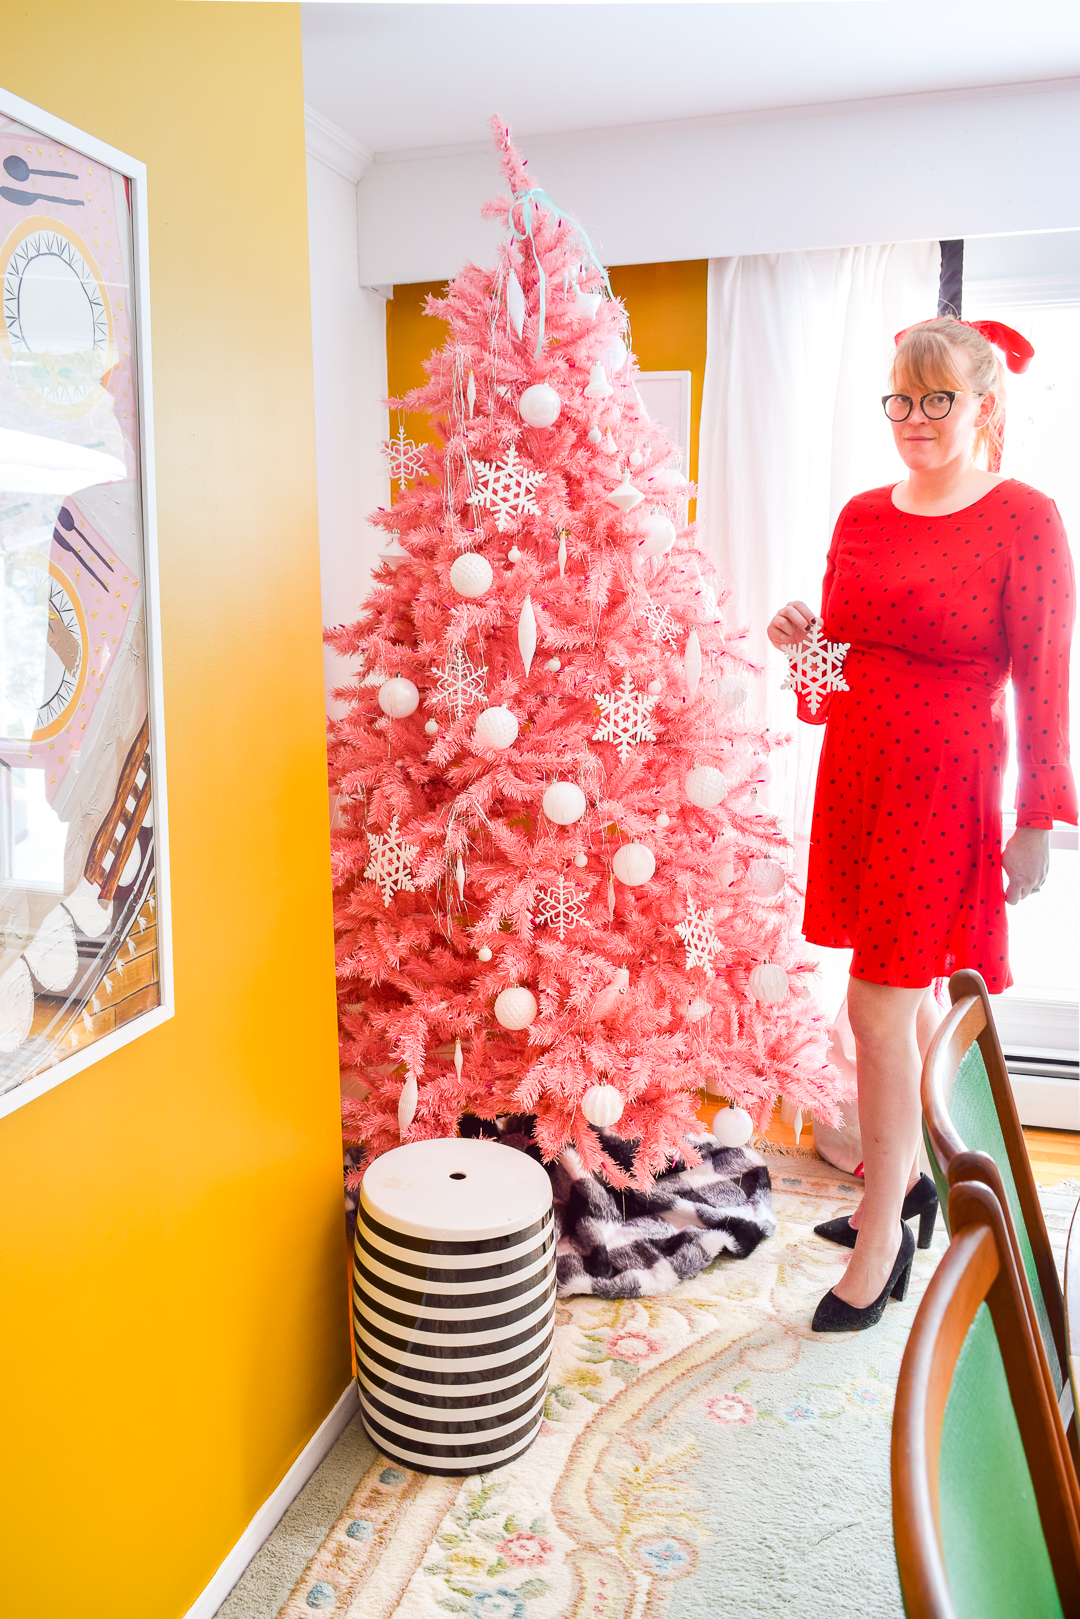 Here are some fabulous people posing next to Christmas trees - a retro homage. (inspired by the sassy women of the past)